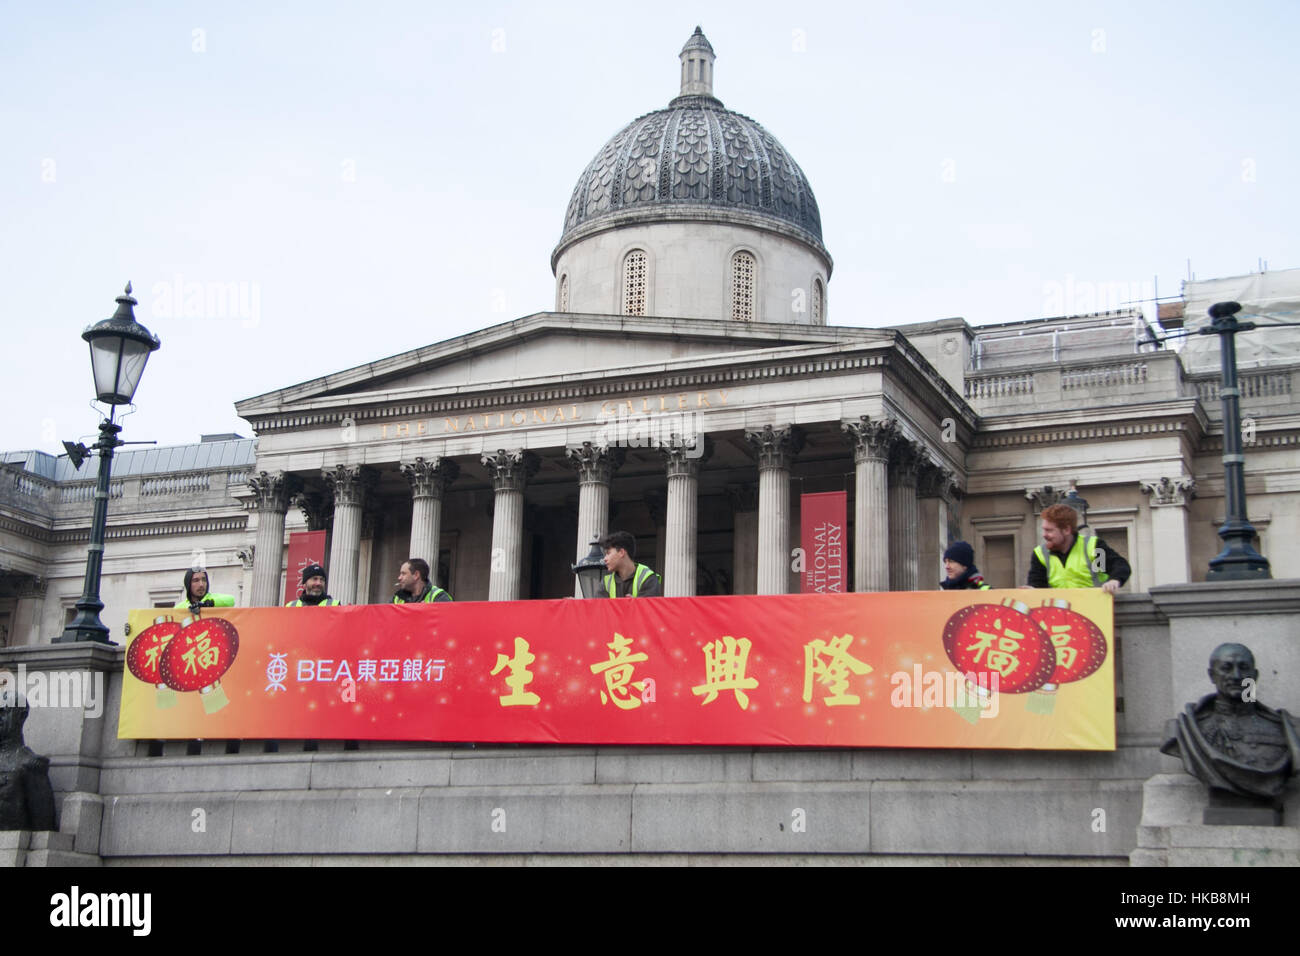 27th january 2017 workers hang a large banner in trafalgar square in preparation for the chinese new year of the rooster celebrations credit amer